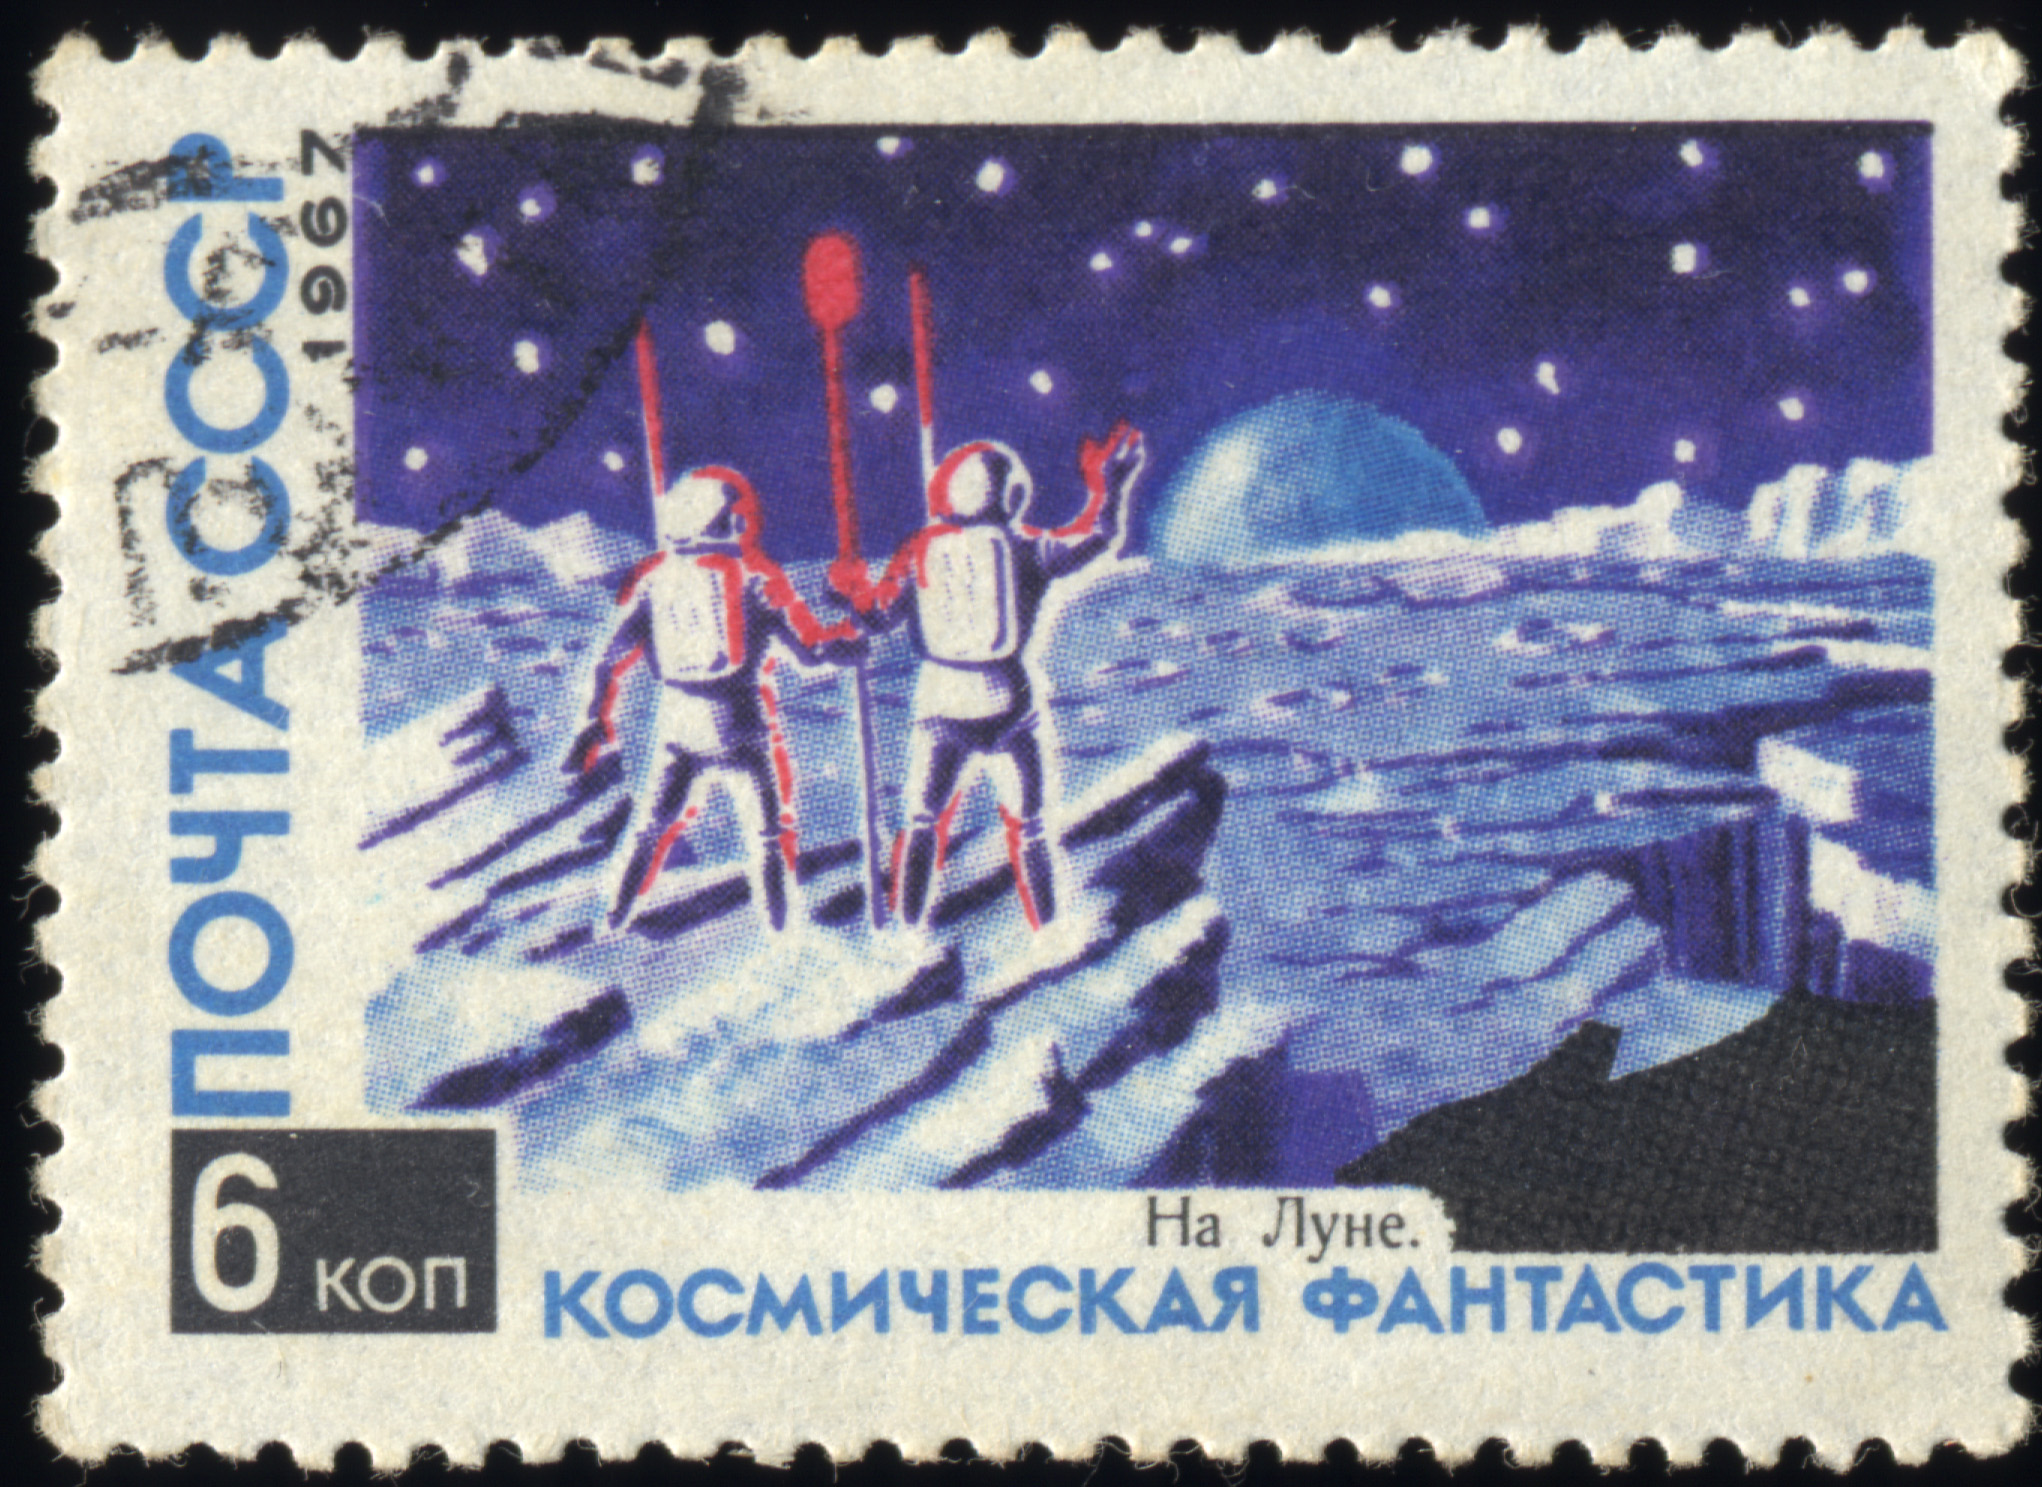 Art - Stamp Art - Russia - Sputnik - USSR 1967 - Science Fiction (3)